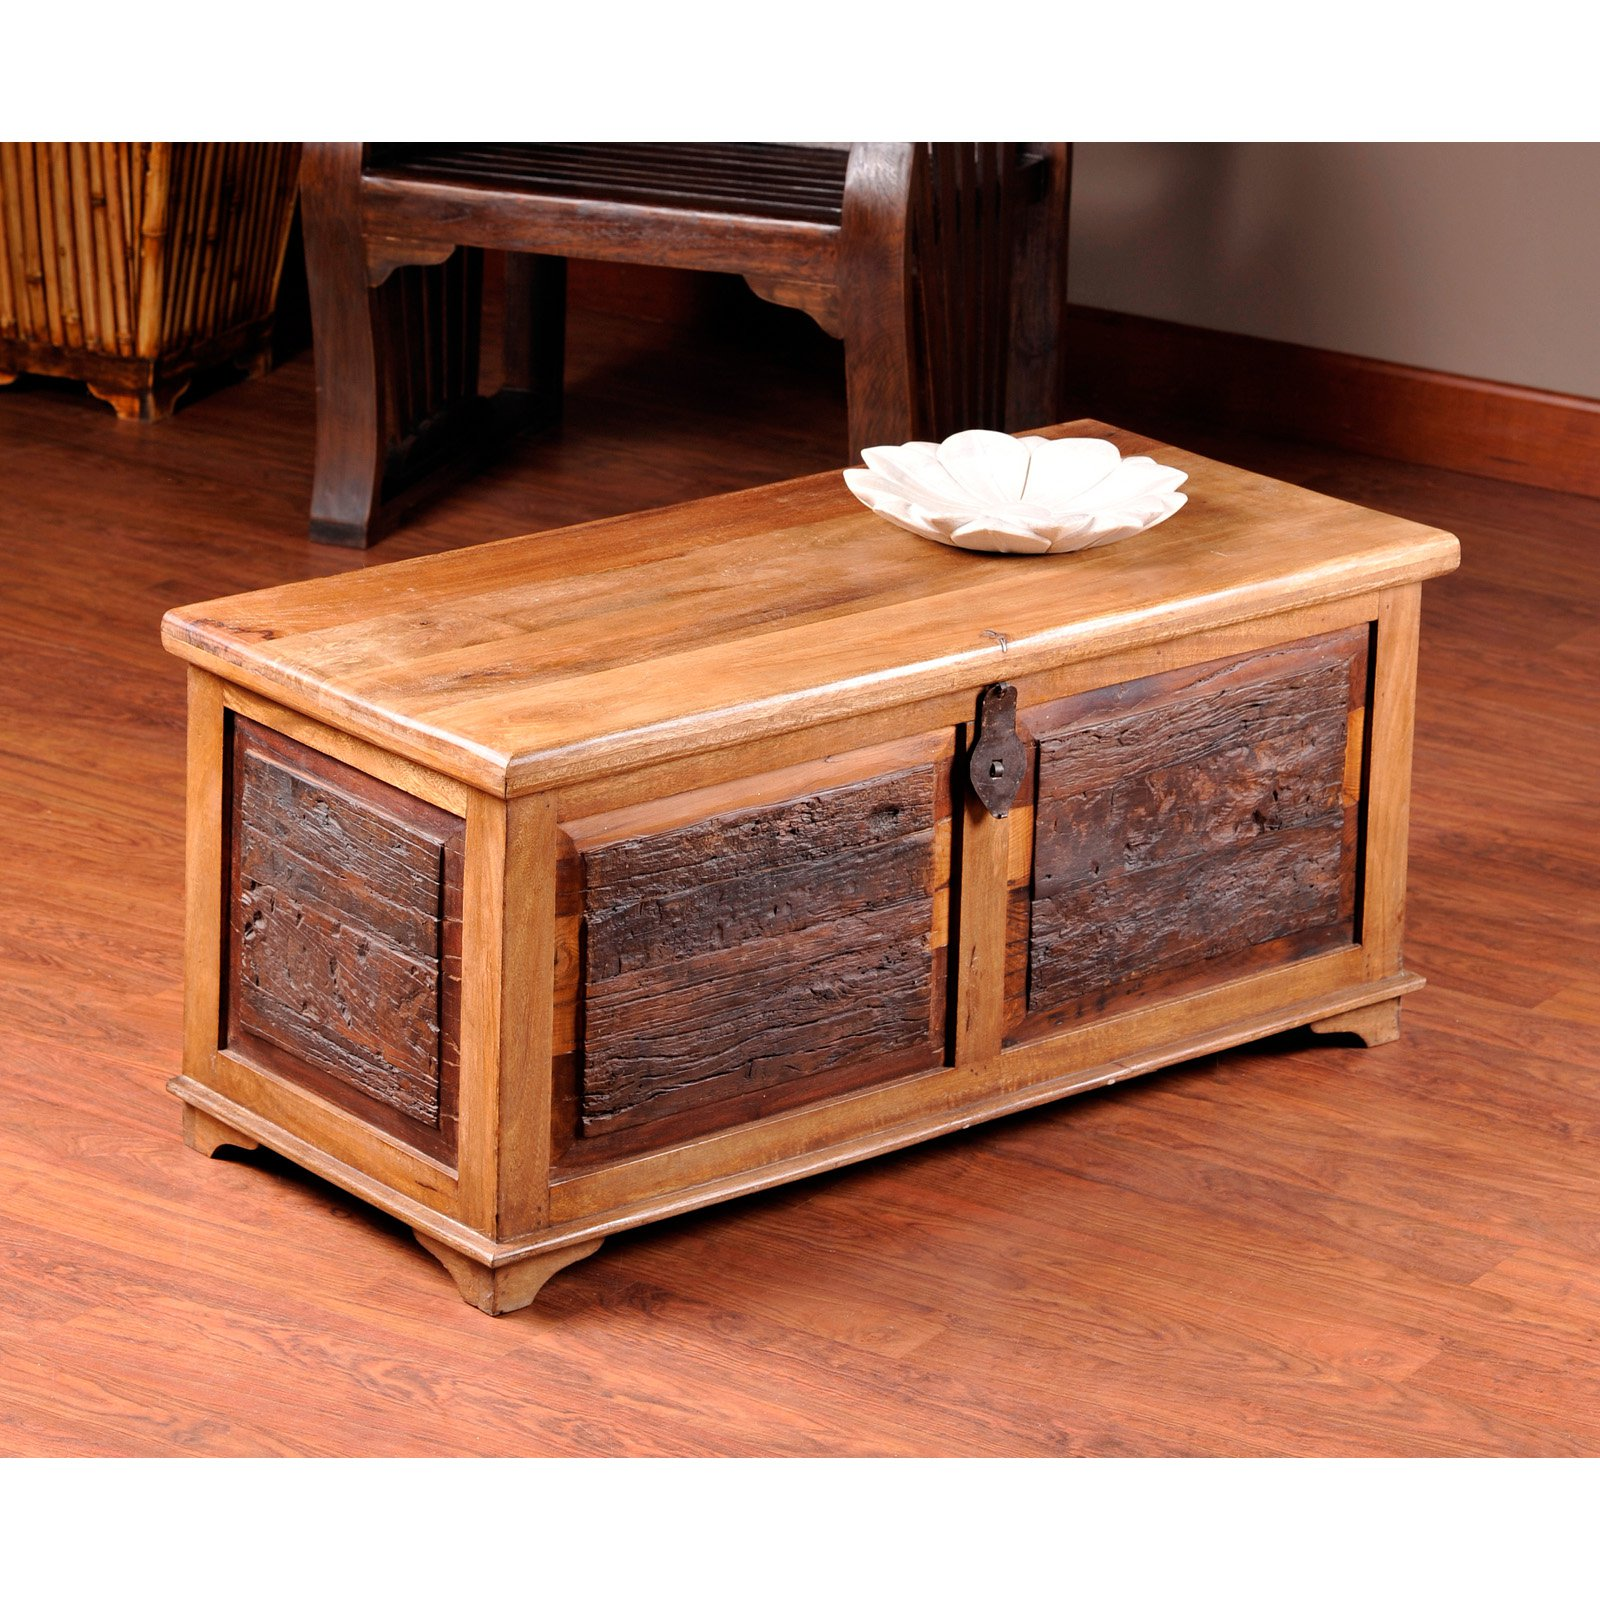 William Sheppee Kerala Blanket Chest